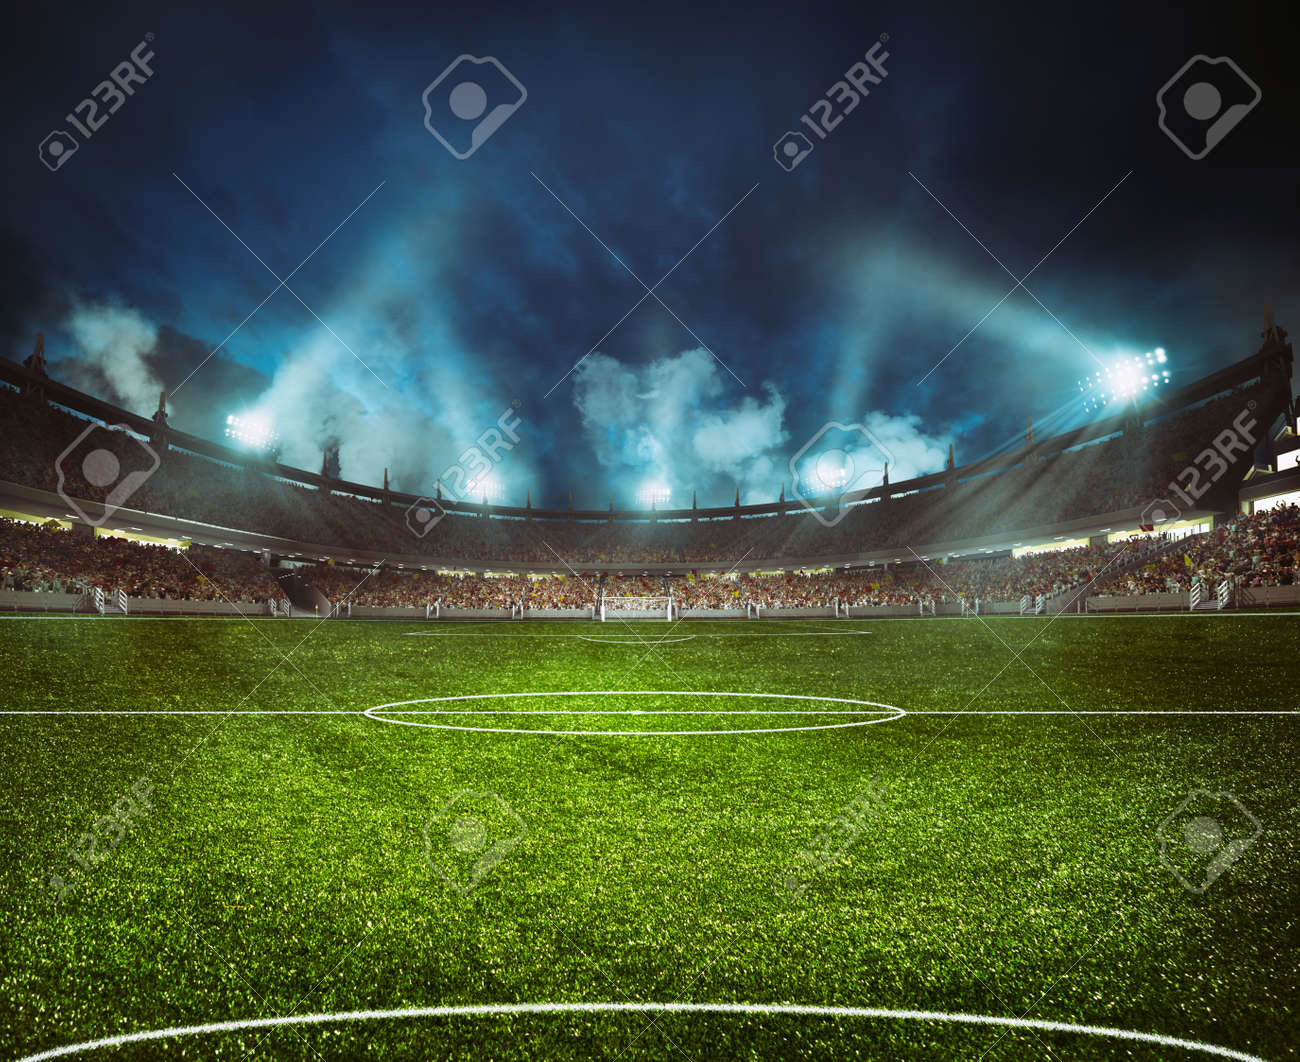 Football stadium with the stands full of fans waiting for the night game - 141700053